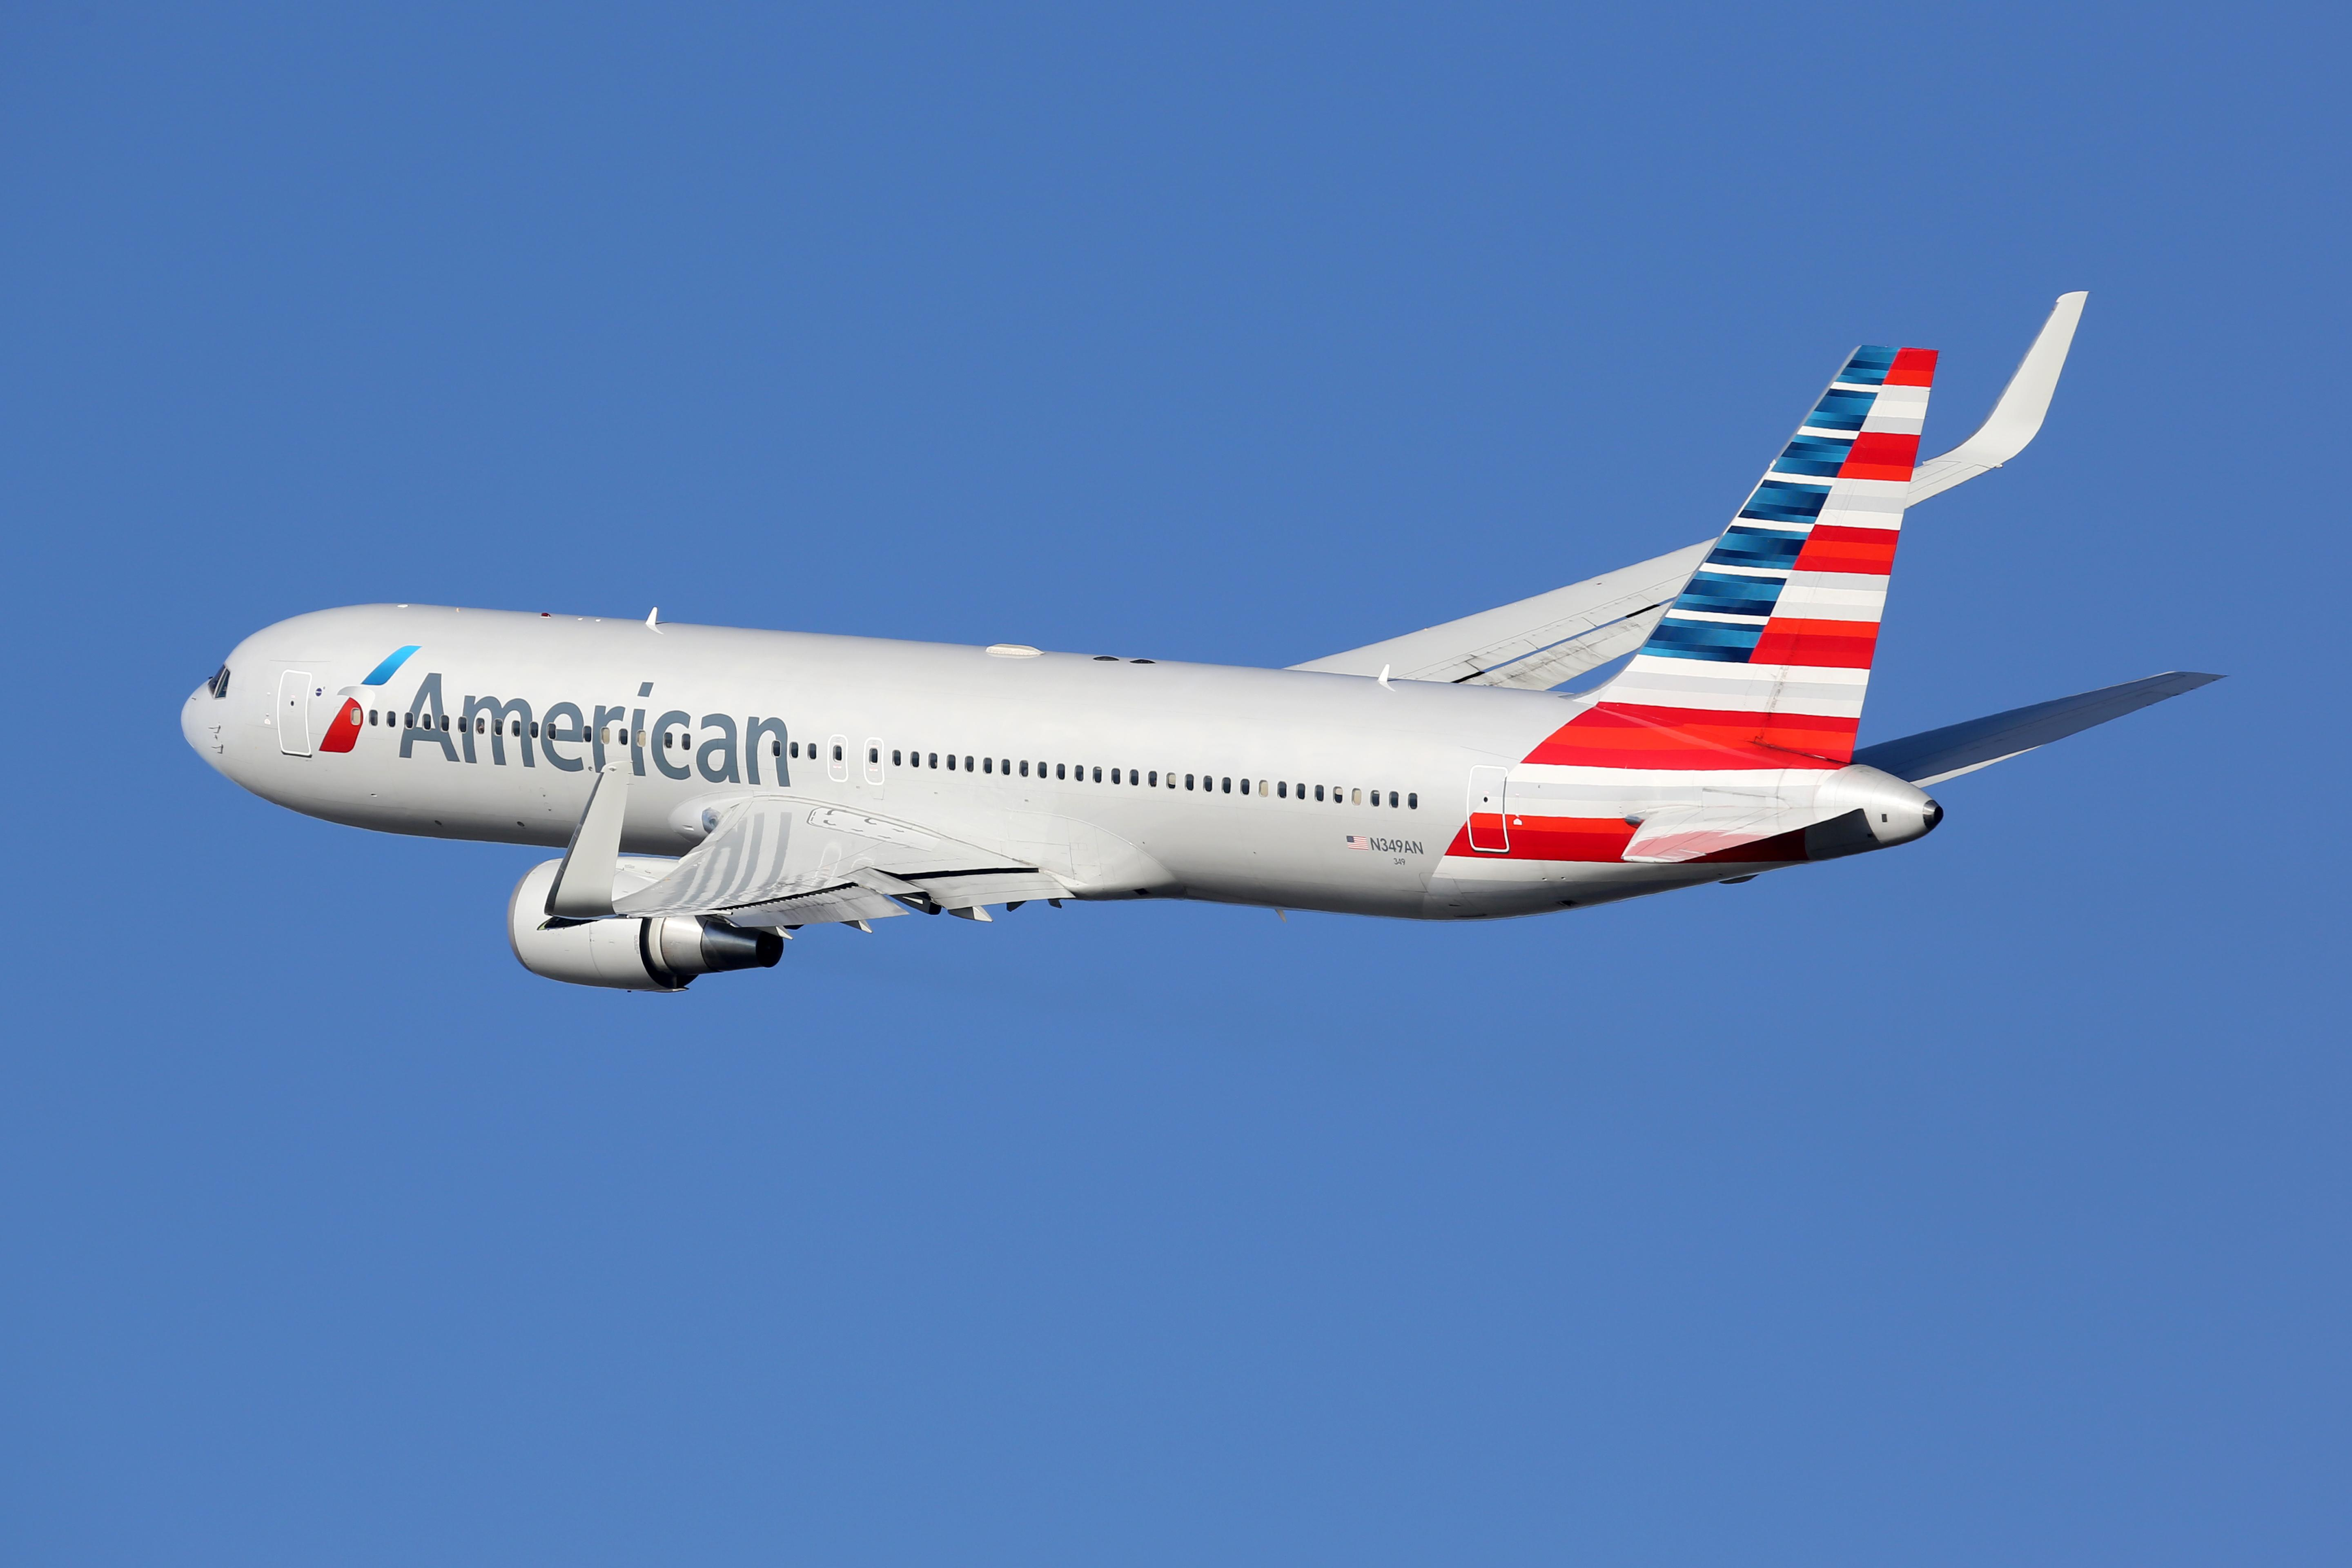 'American is most at risk' of coronavirus default among US airlines